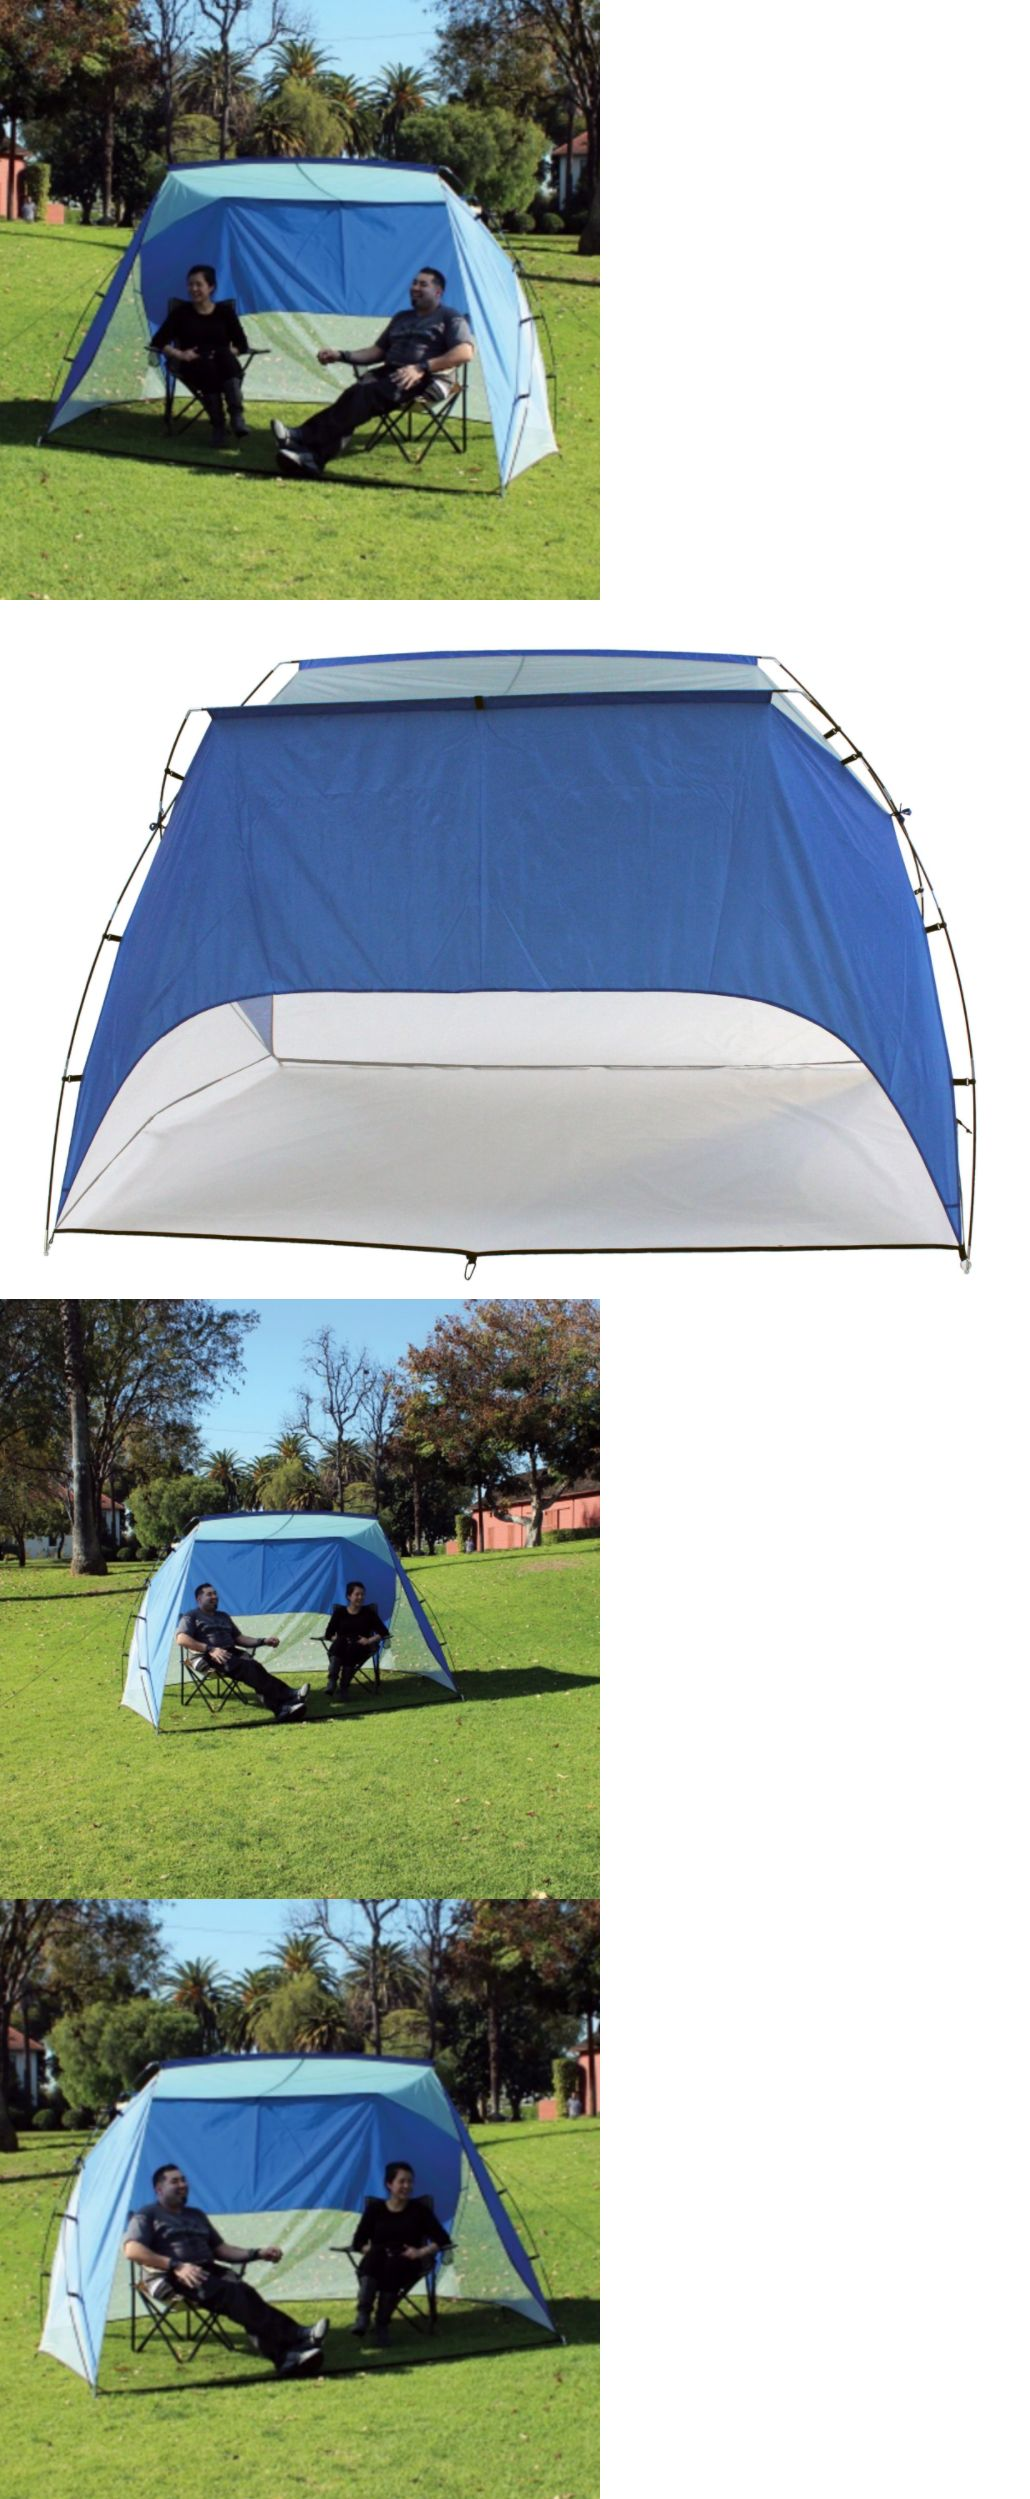 Canopies and Shelters 179011 Sun Shade Tent Portable Pop Up Beach Cabana Outdoor Sports Canopy  sc 1 st  Pinterest & Canopies and Shelters 179011: Sun Shade Tent Portable Pop Up Beach ...